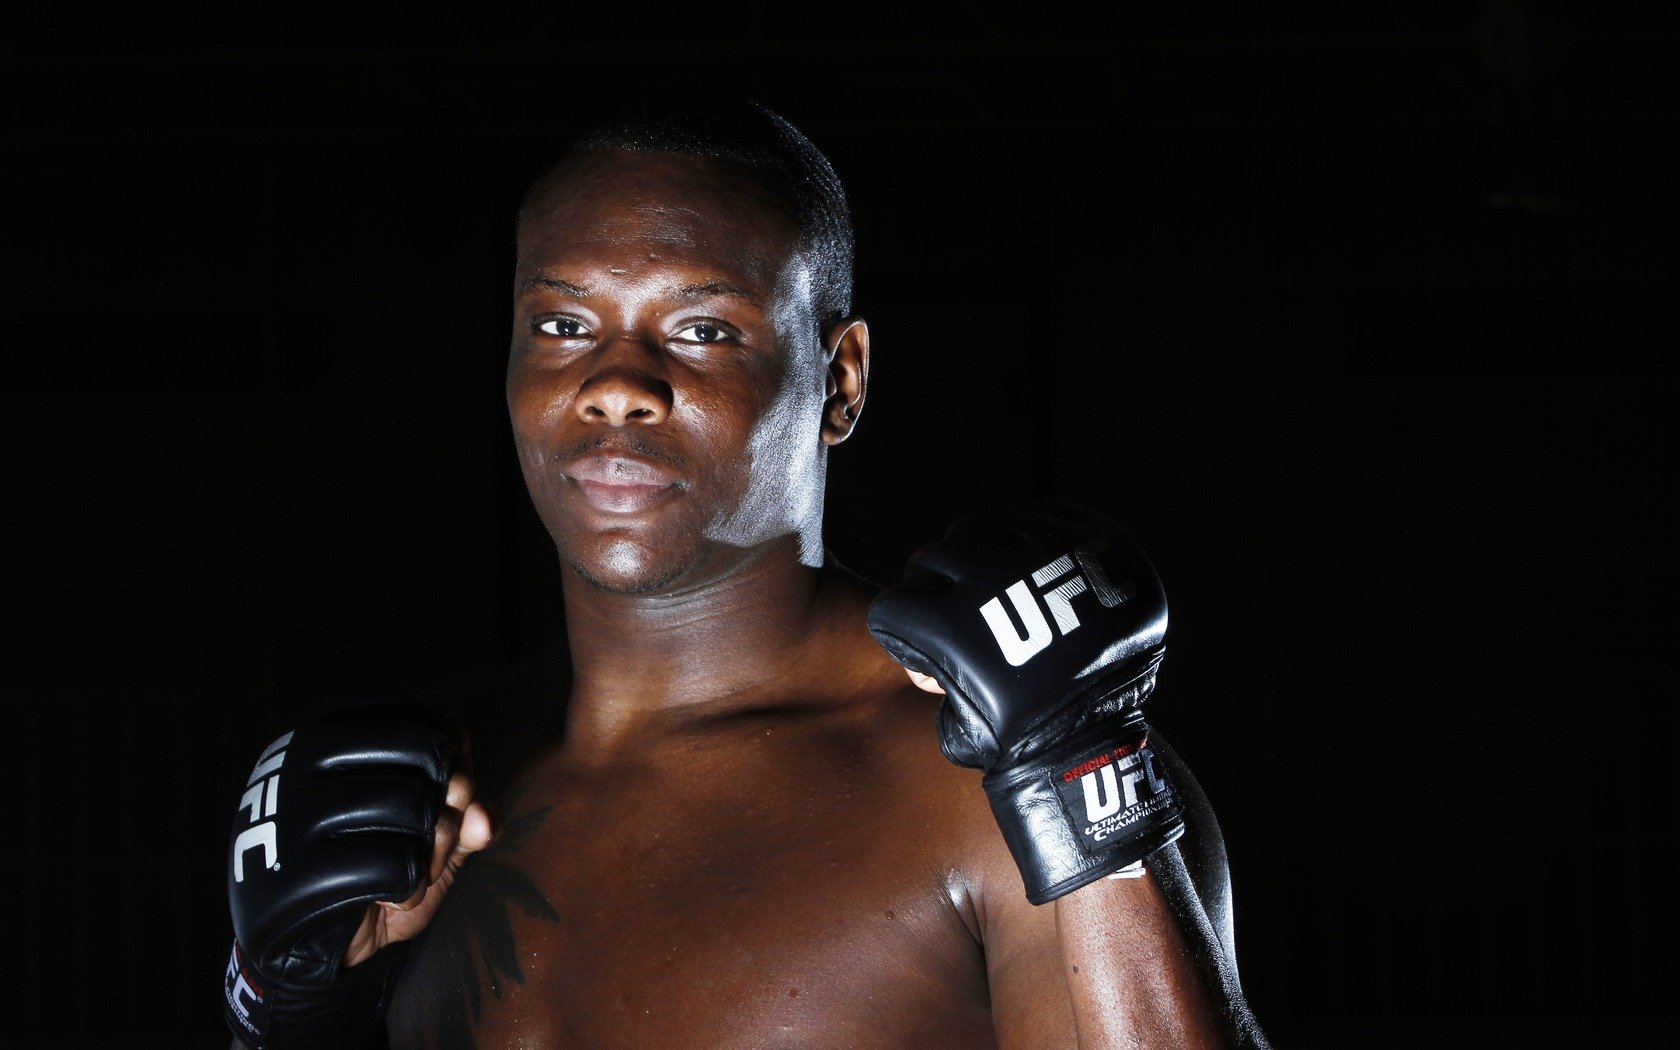 Download wallpaper 1680x1050 ovince saint preux ultimate fighting 1680x1050